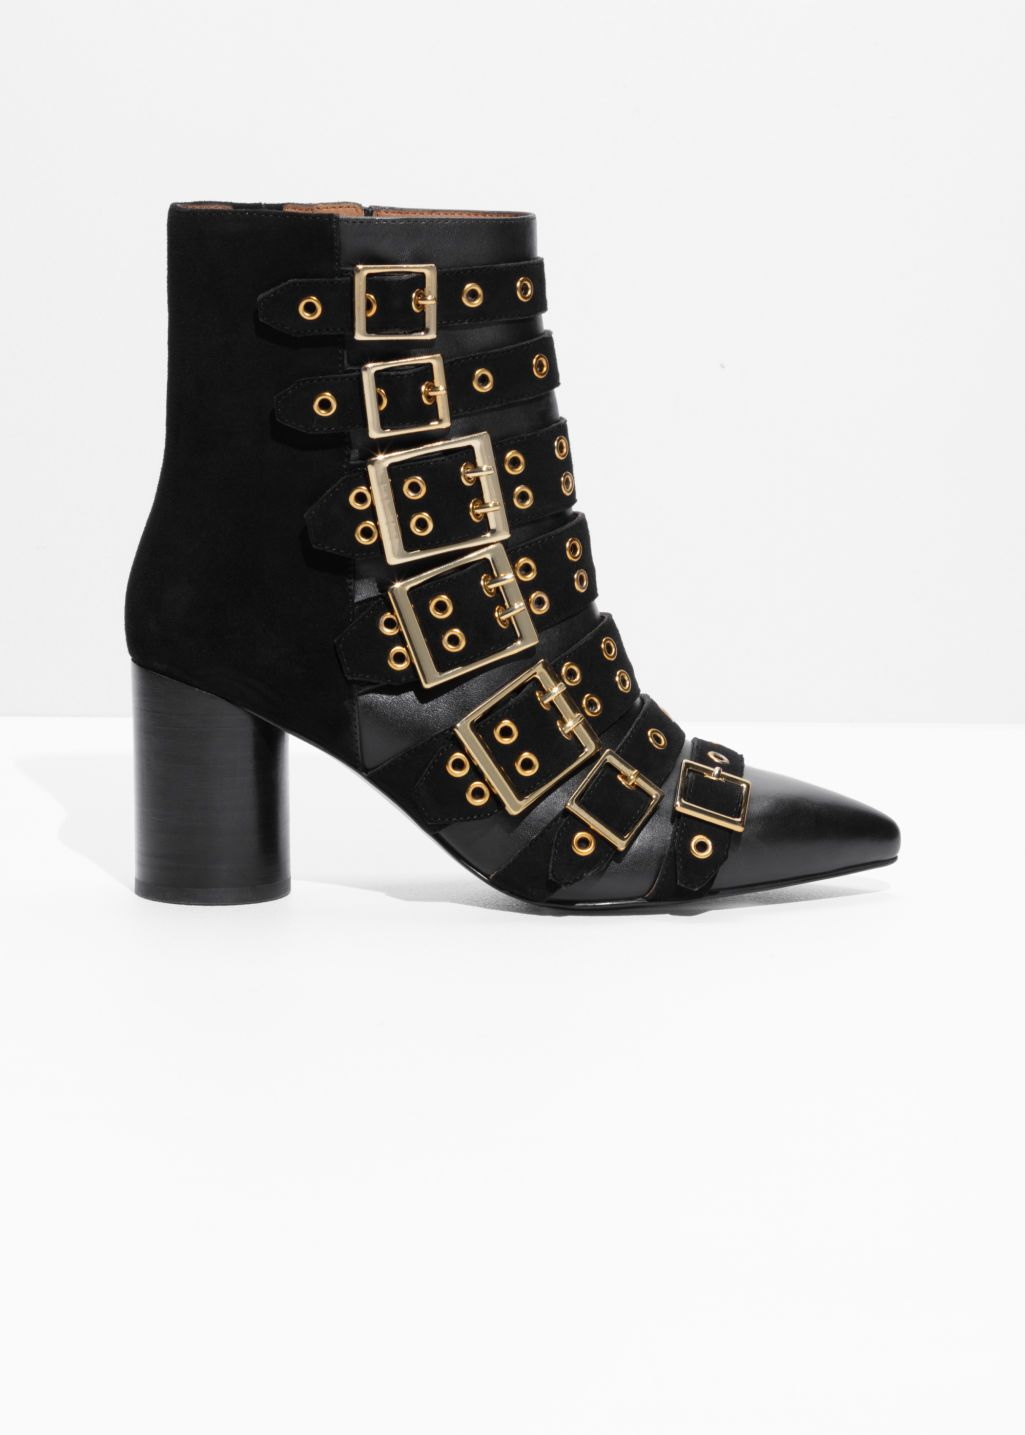 030f060fca3 Multi Buckle Ankle Boots - Black - Ankleboots - & Other Stories ...